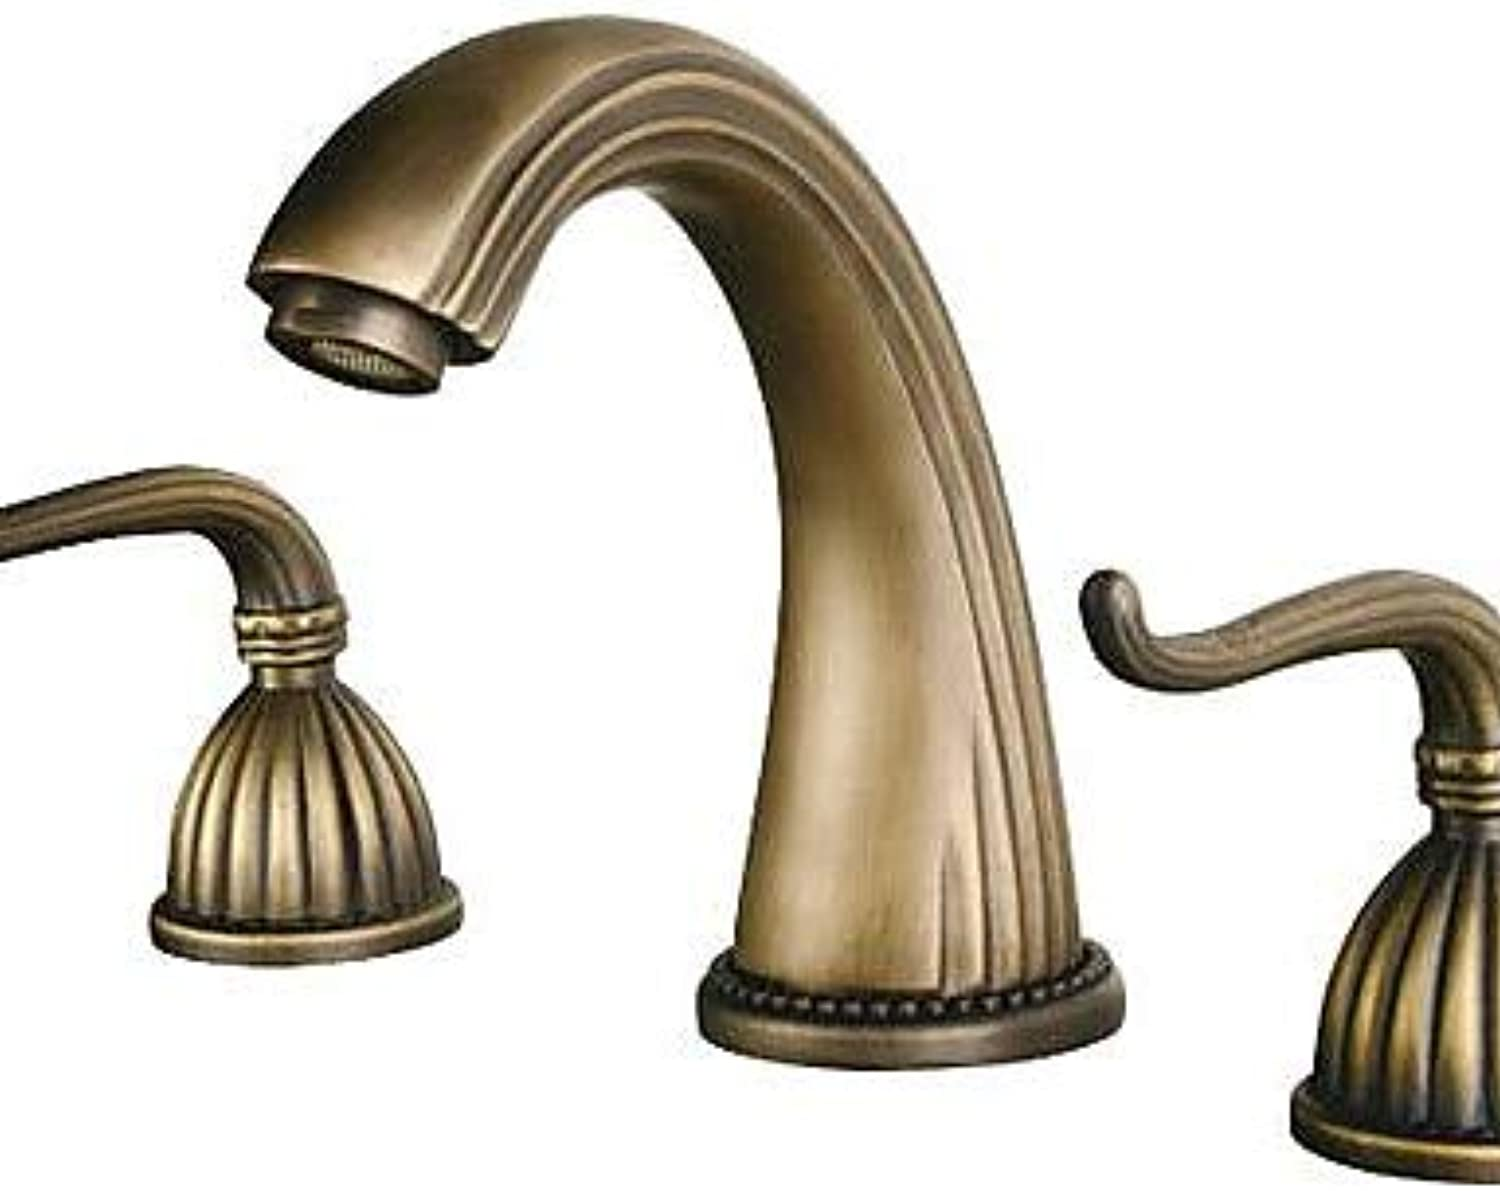 Mainstream home LPZSQ Tap Antique Brass Finish Widespread Bathroom Sink Faucet  346